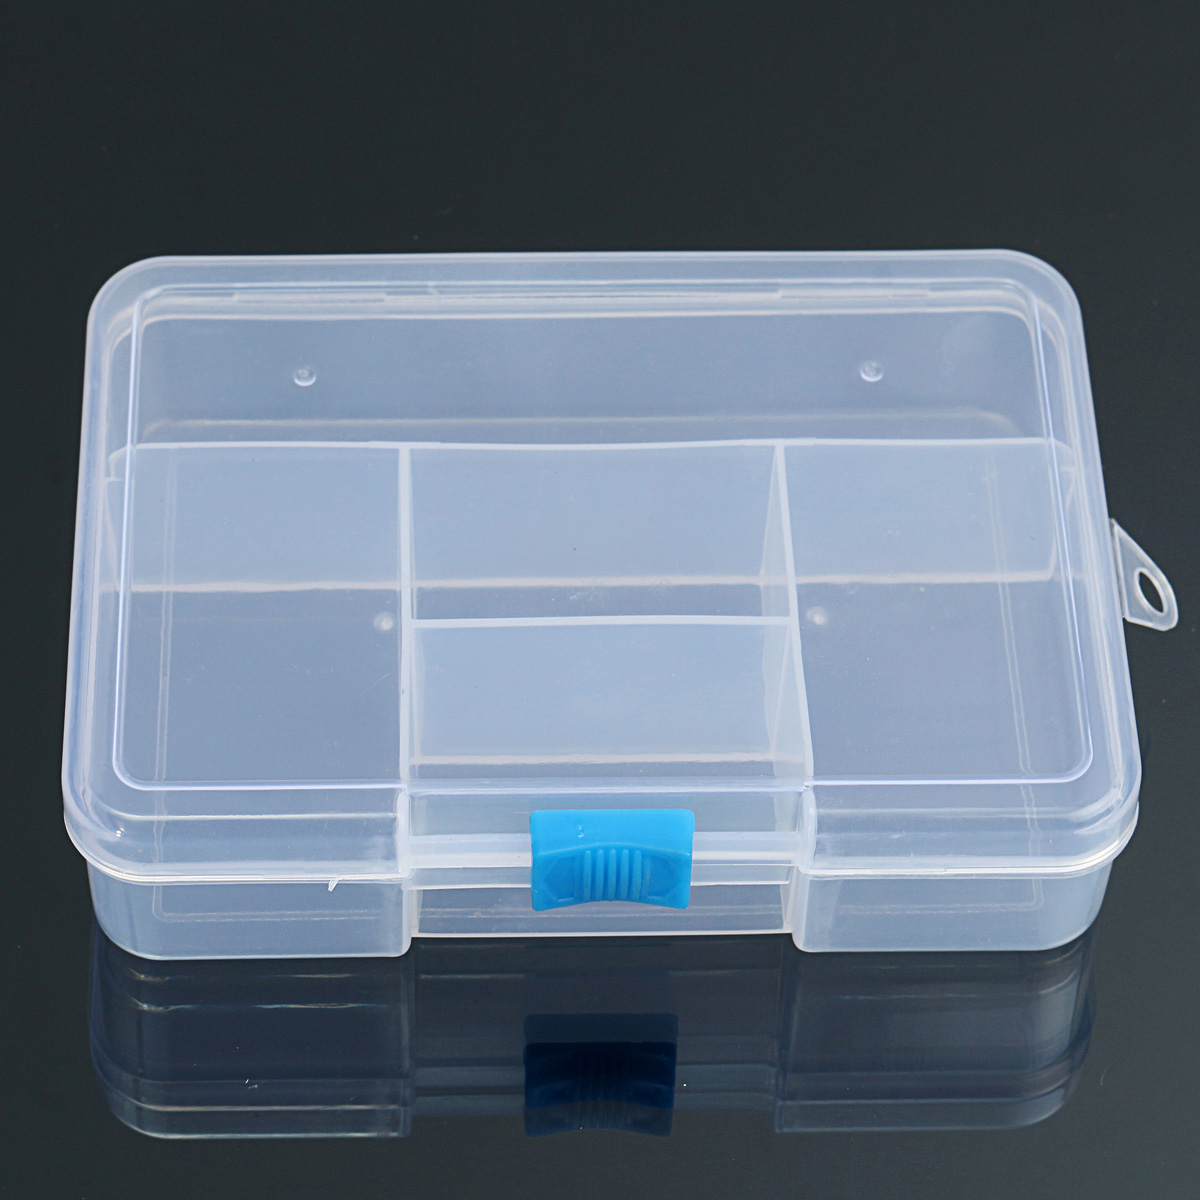 5 Grids Clear PP Eco-Friendly Adjustable Storage Container DIY Crafts Jewelry Organizer Dividers Box